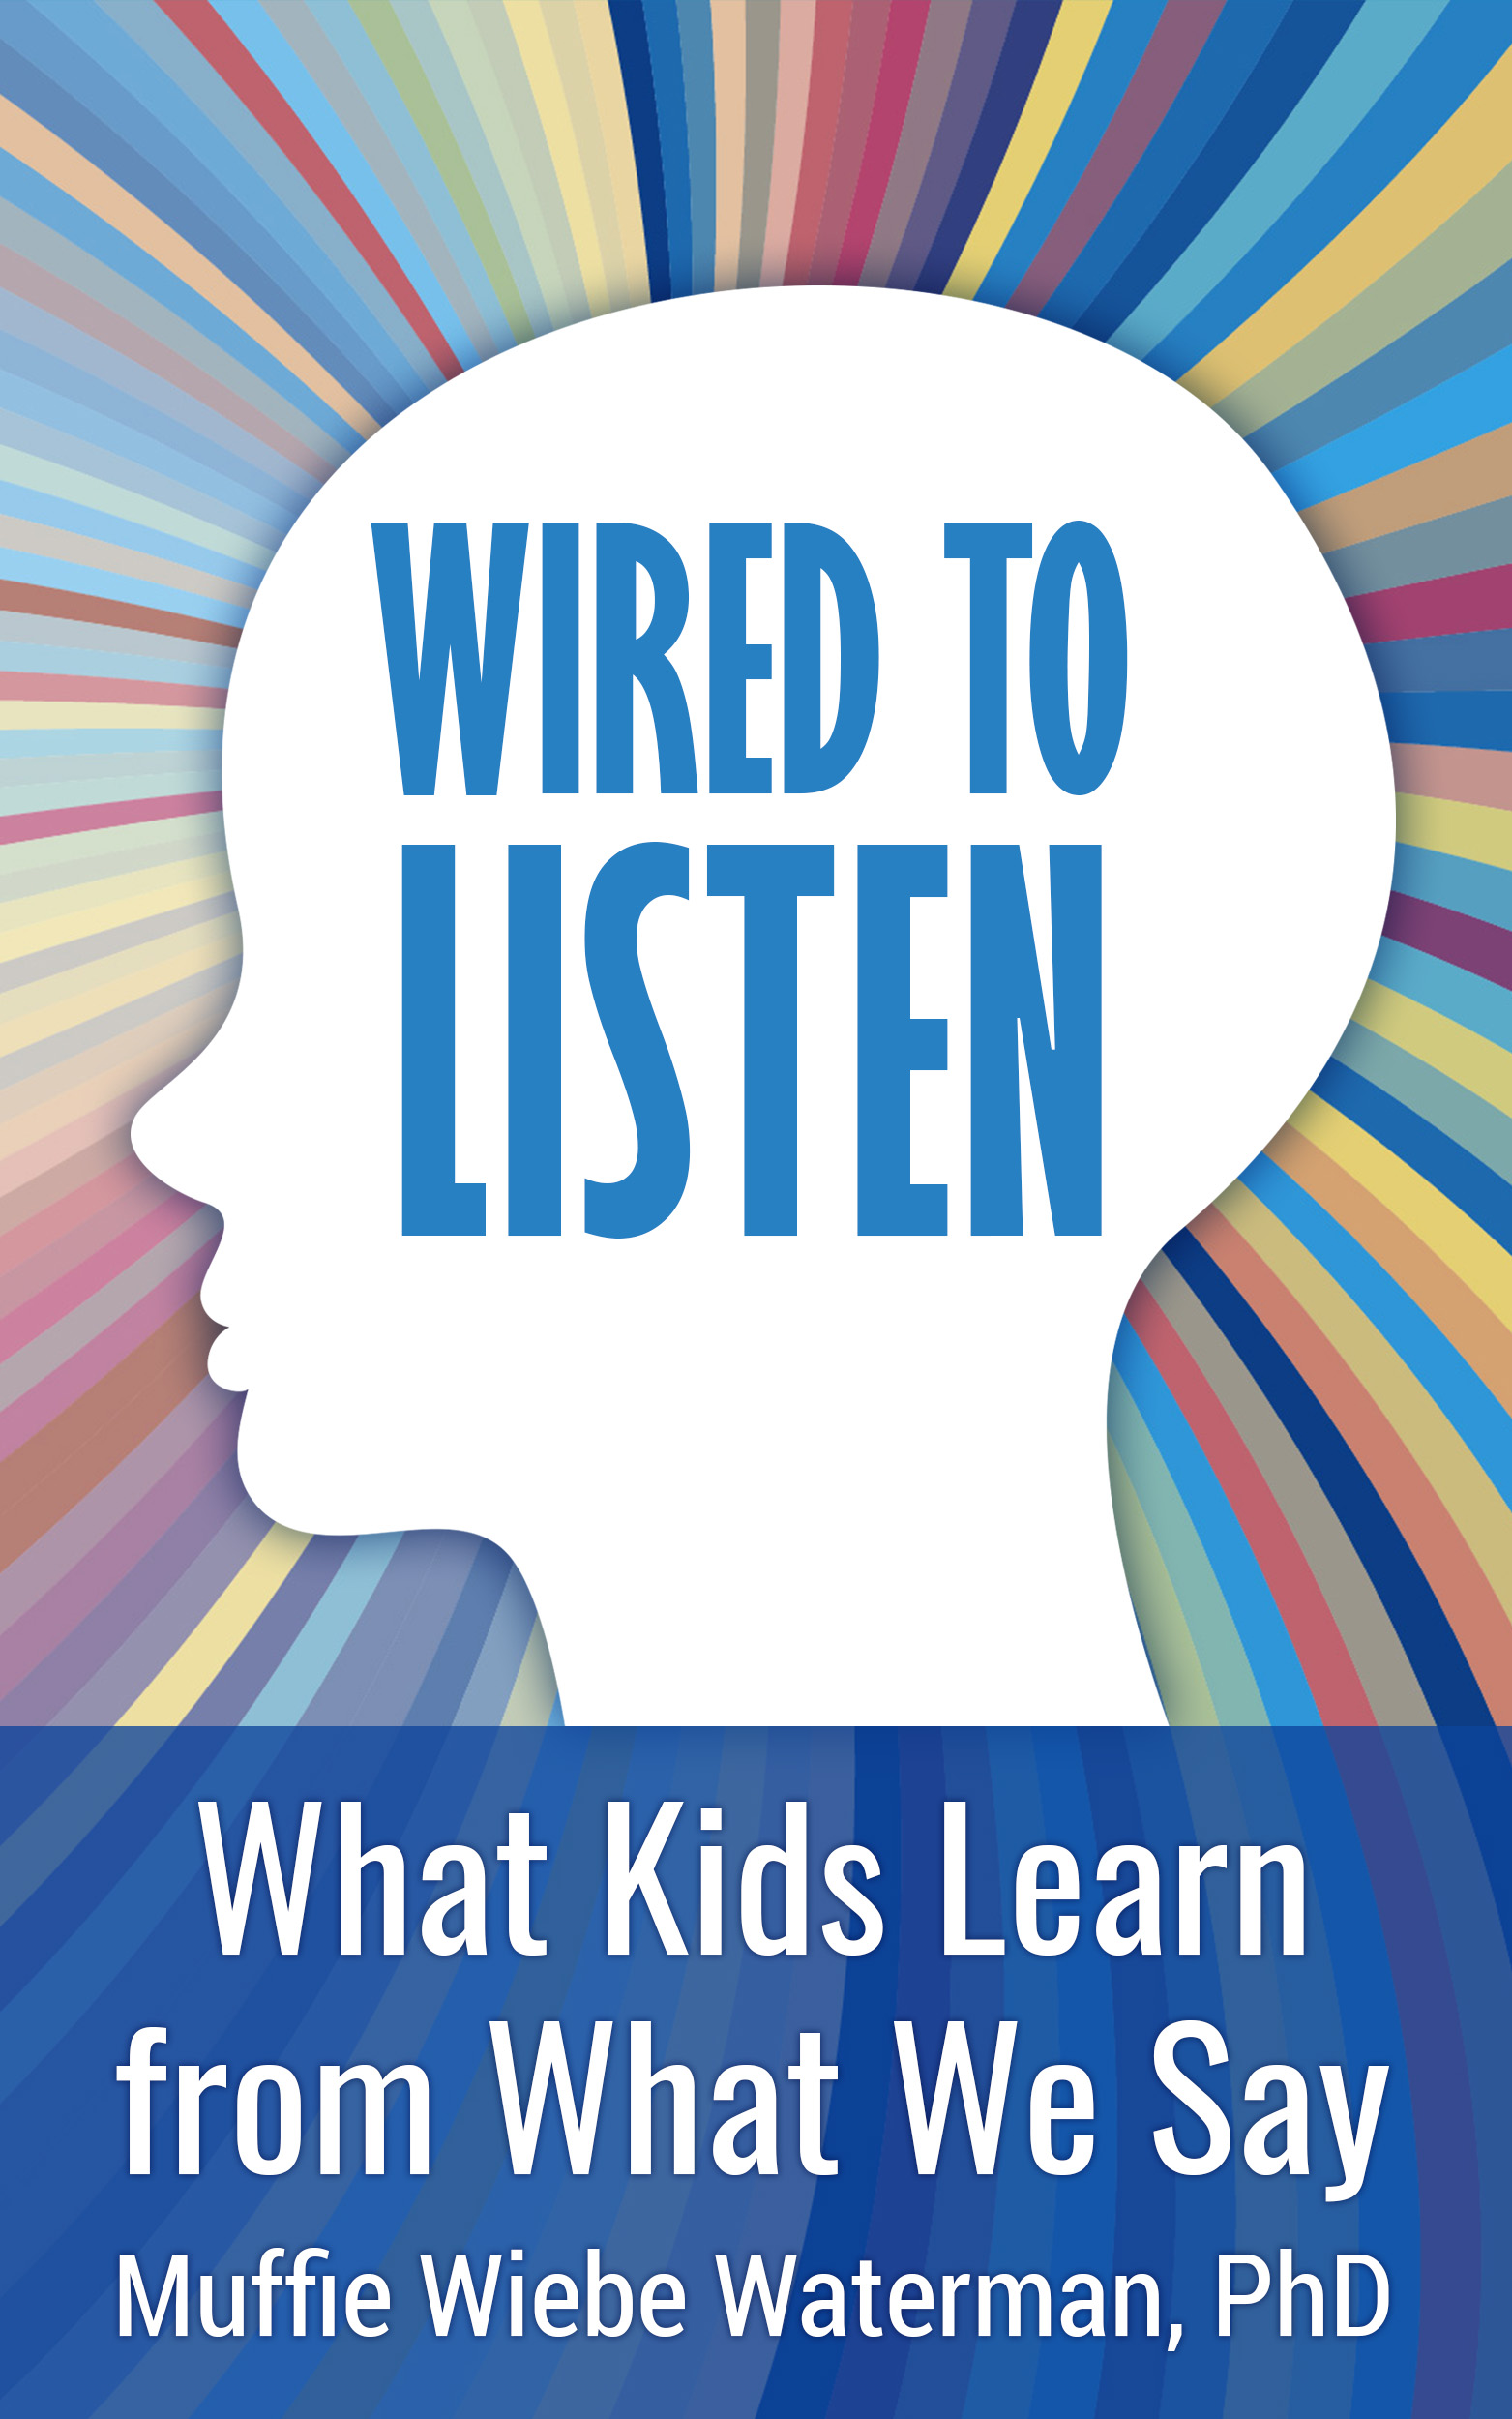 Wired to Listen front cover.jpg